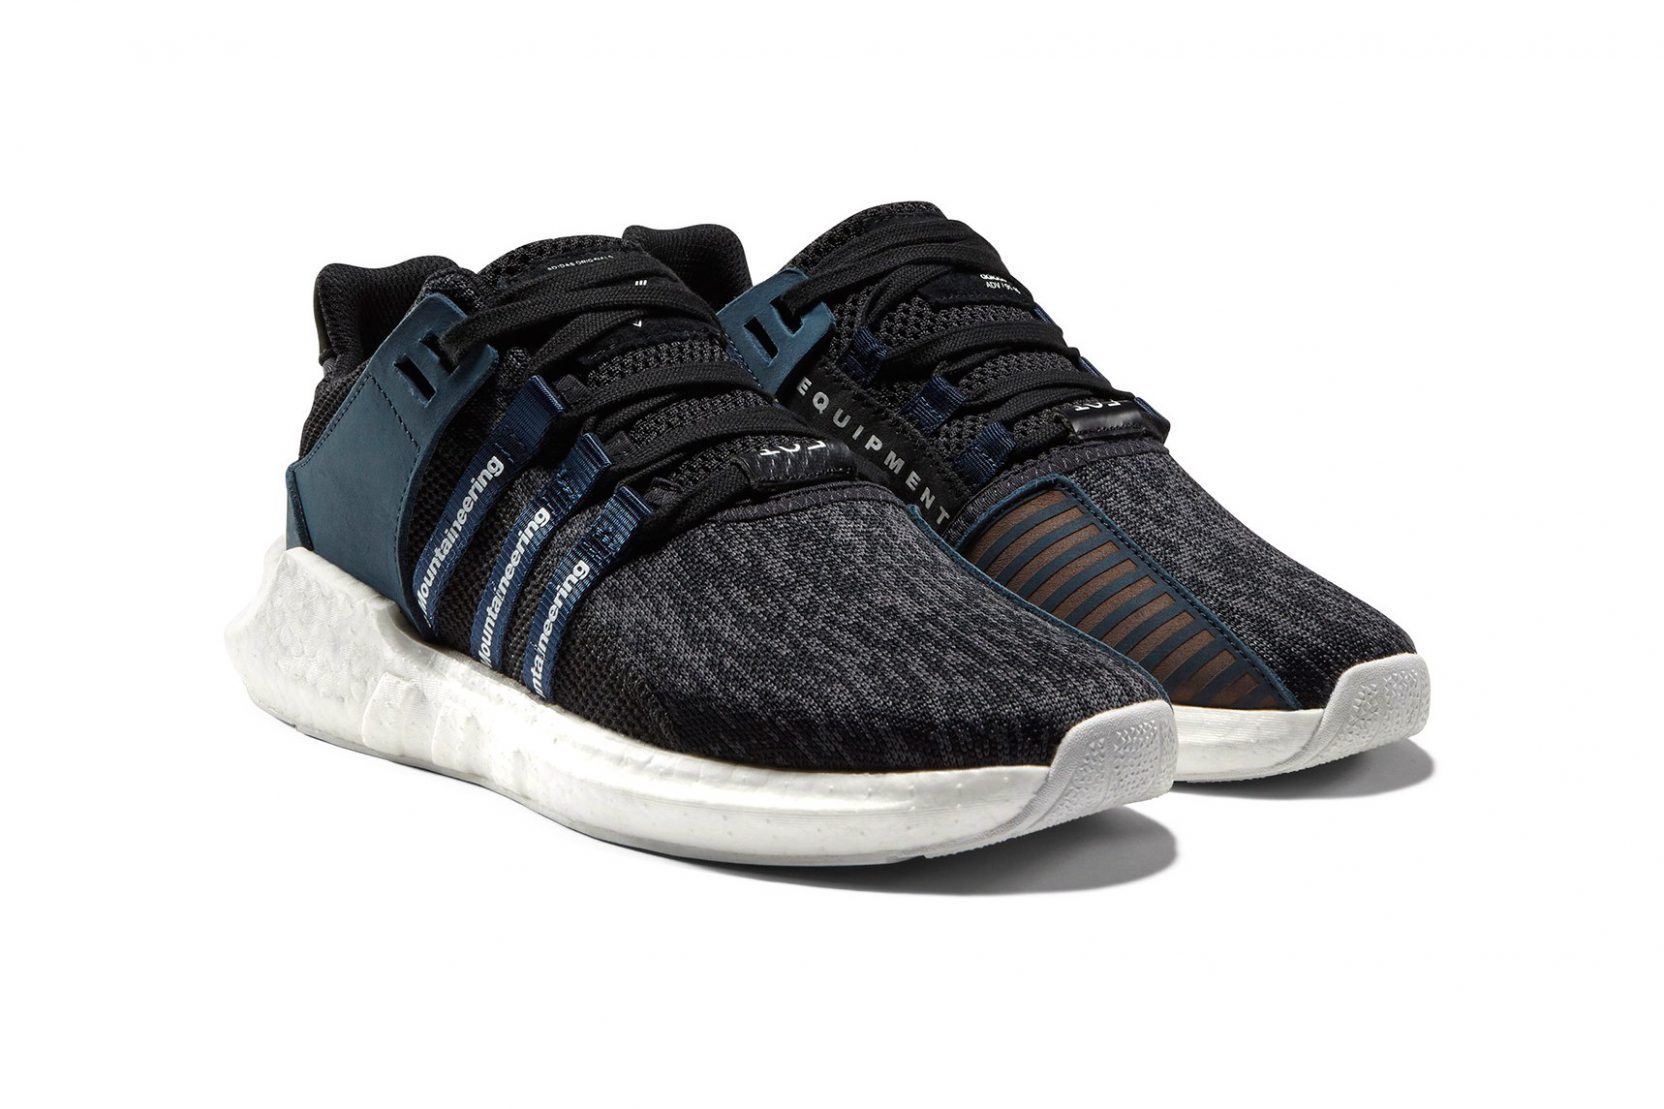 White Mountaineering x Adidas Spring Collection 7